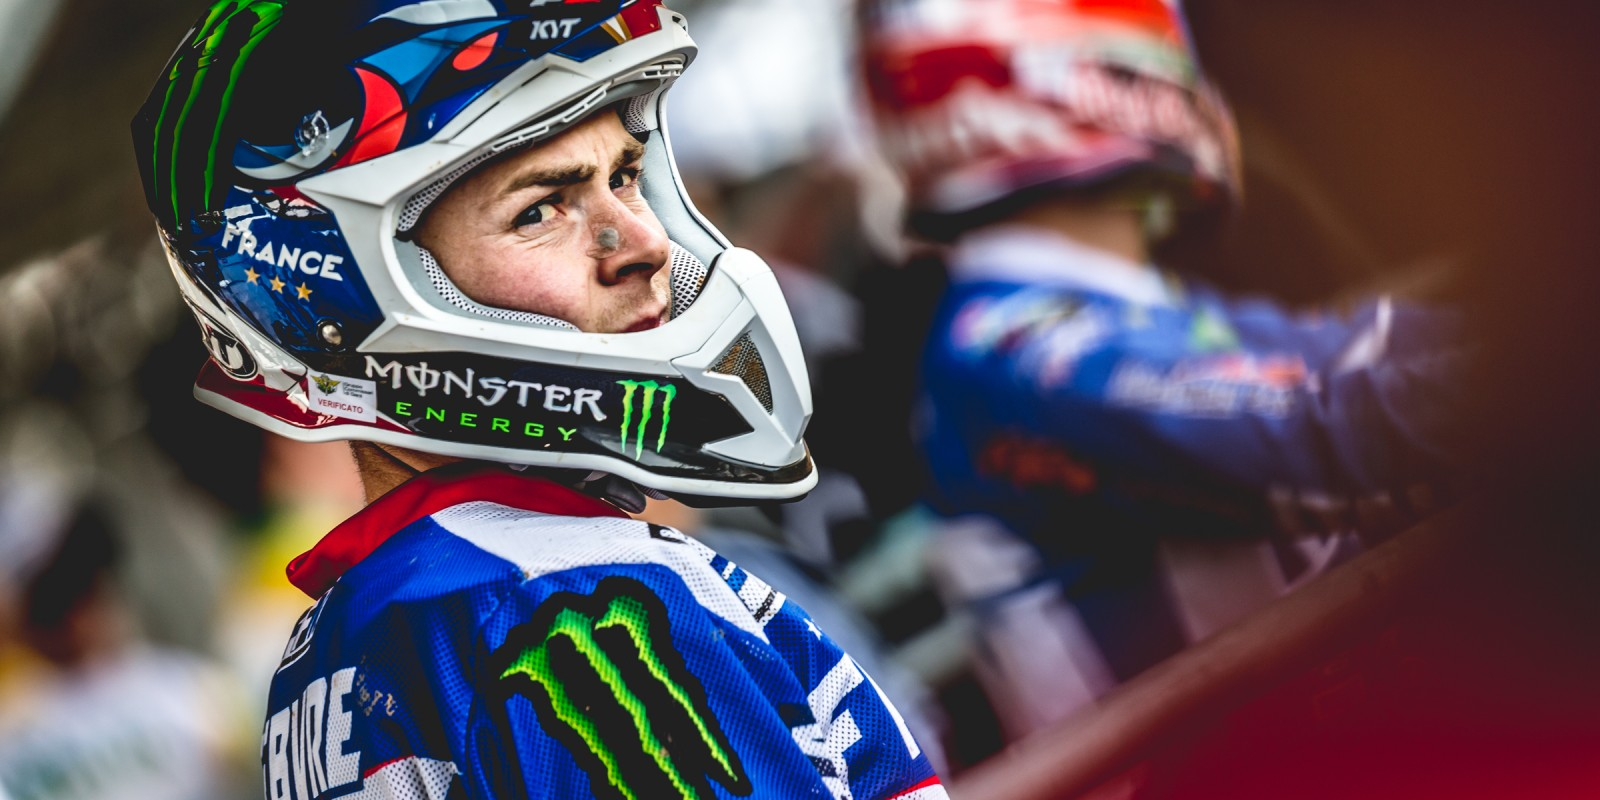 Pictures from MXON Saturday